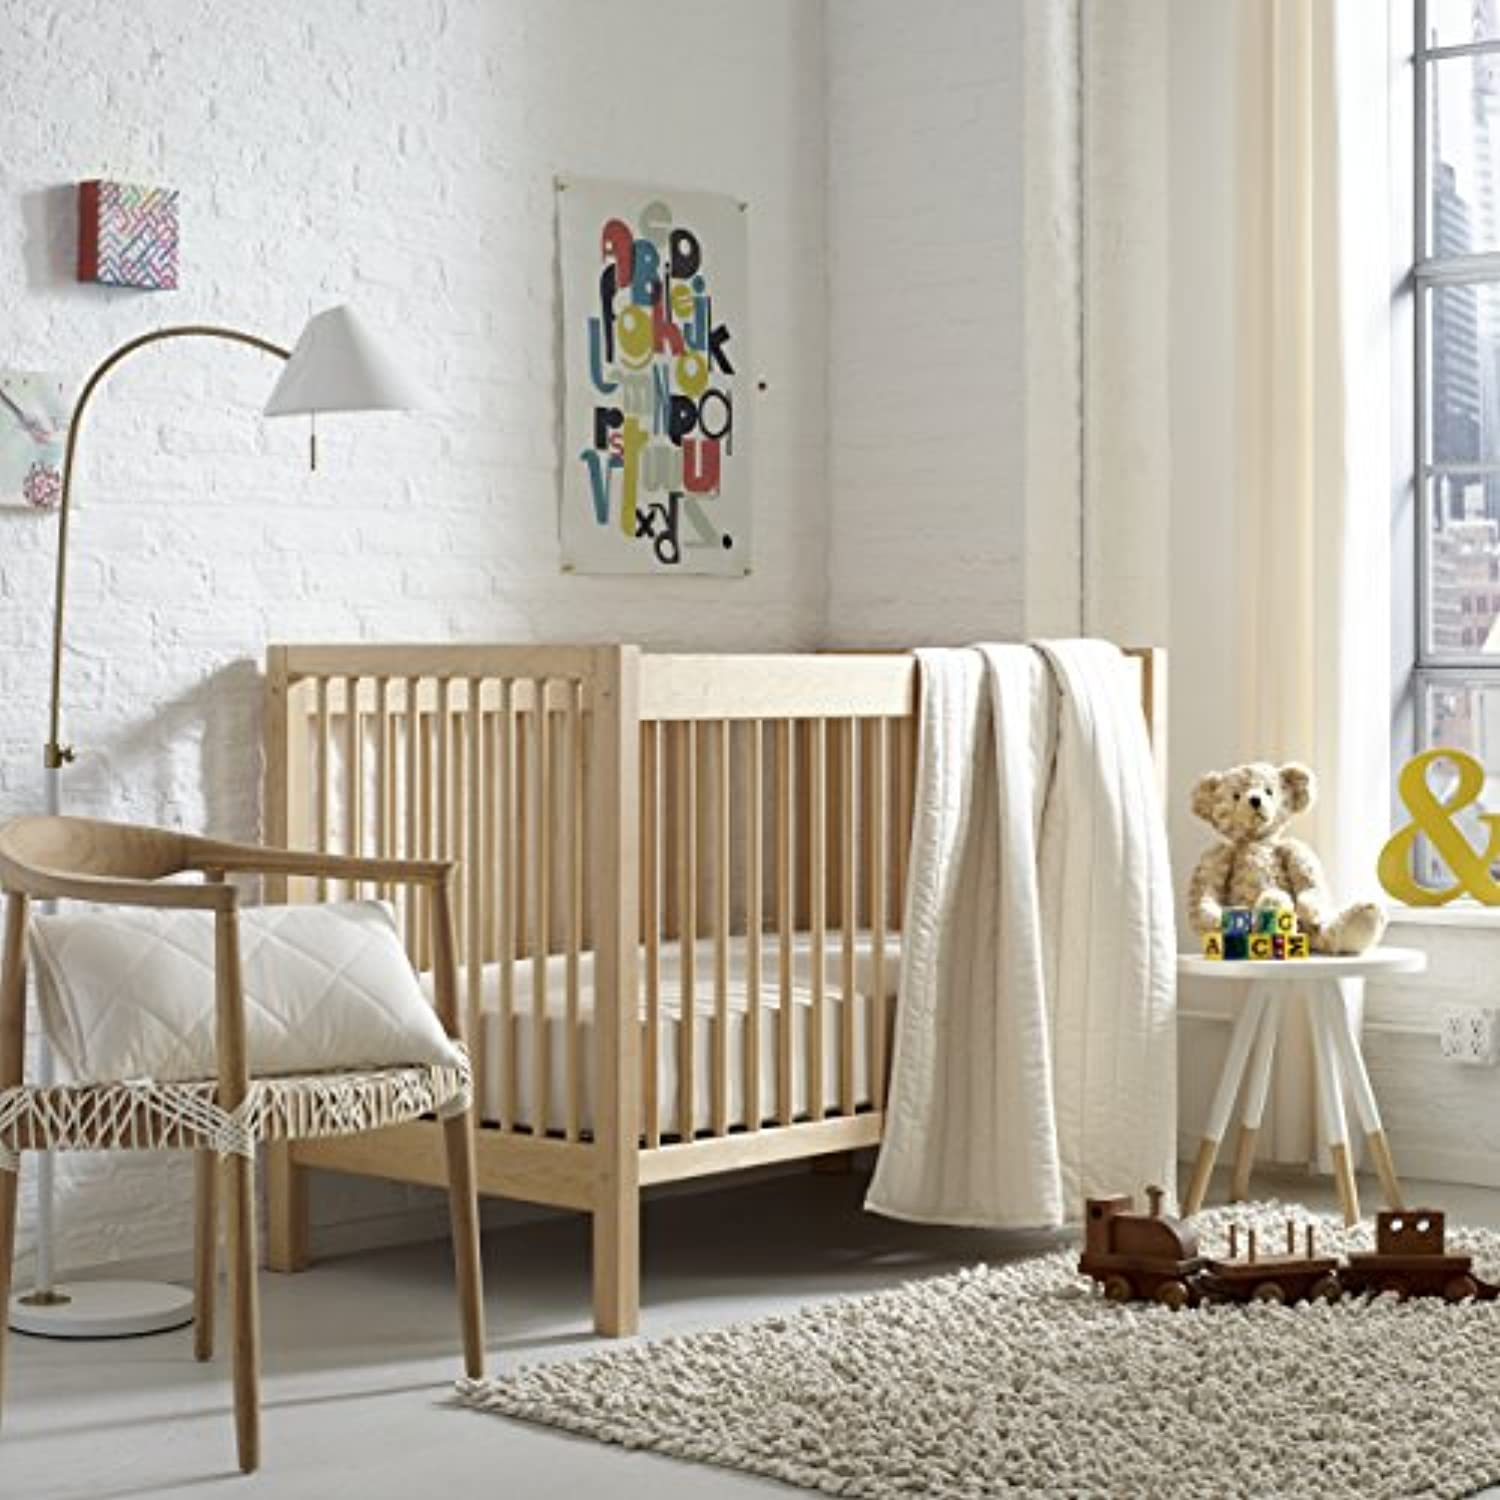 Greenbuds Natural Neutrals Crib/Toddler Bedding (Set of 3) by Greenbuds